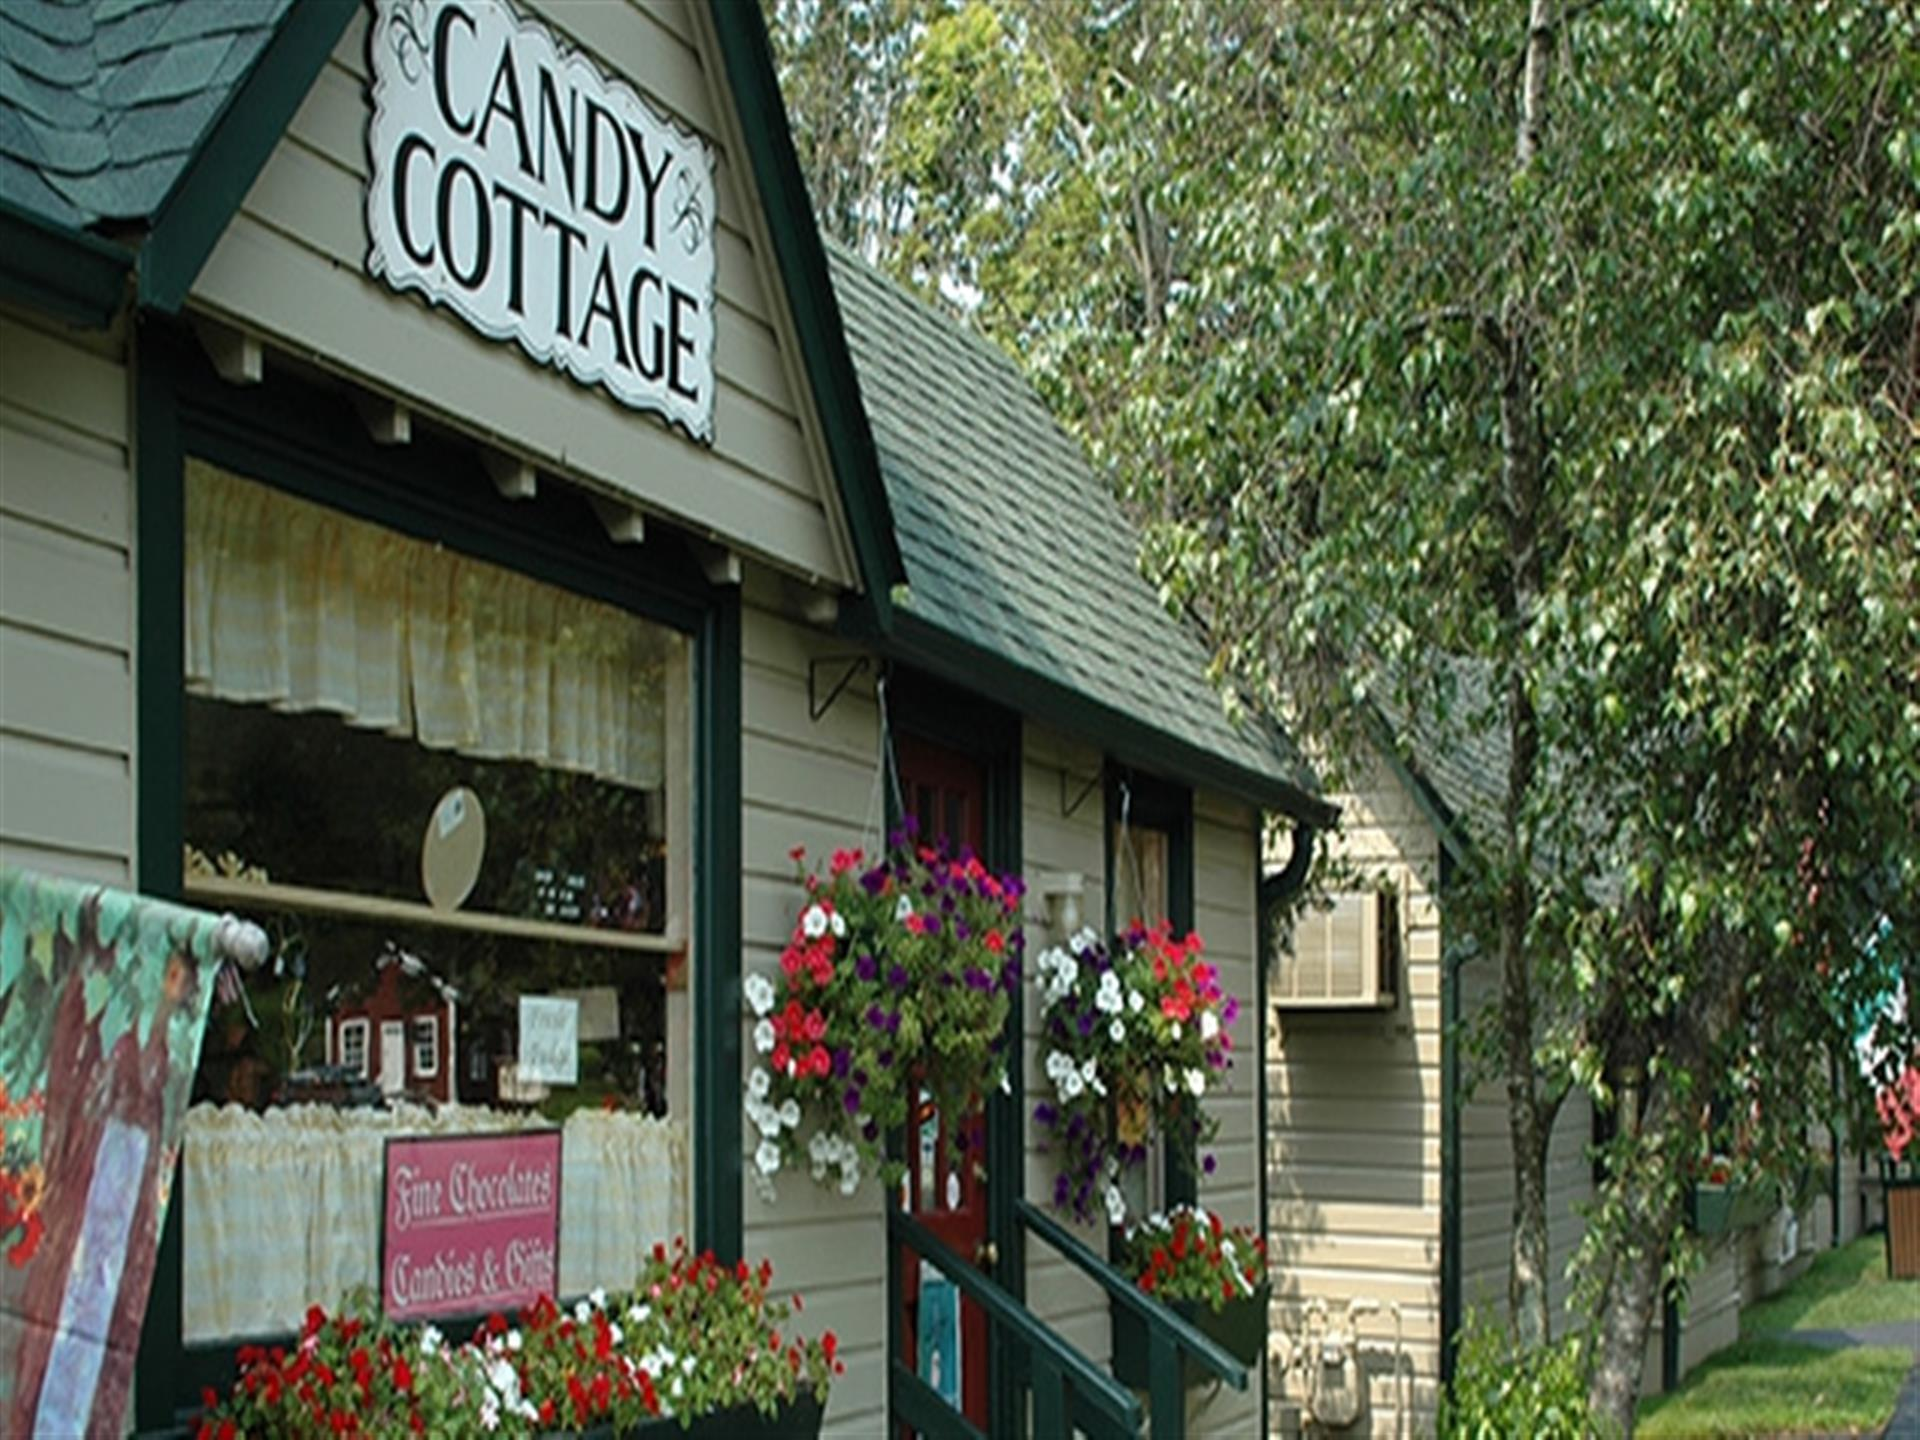 Candy Cottage front entrance.